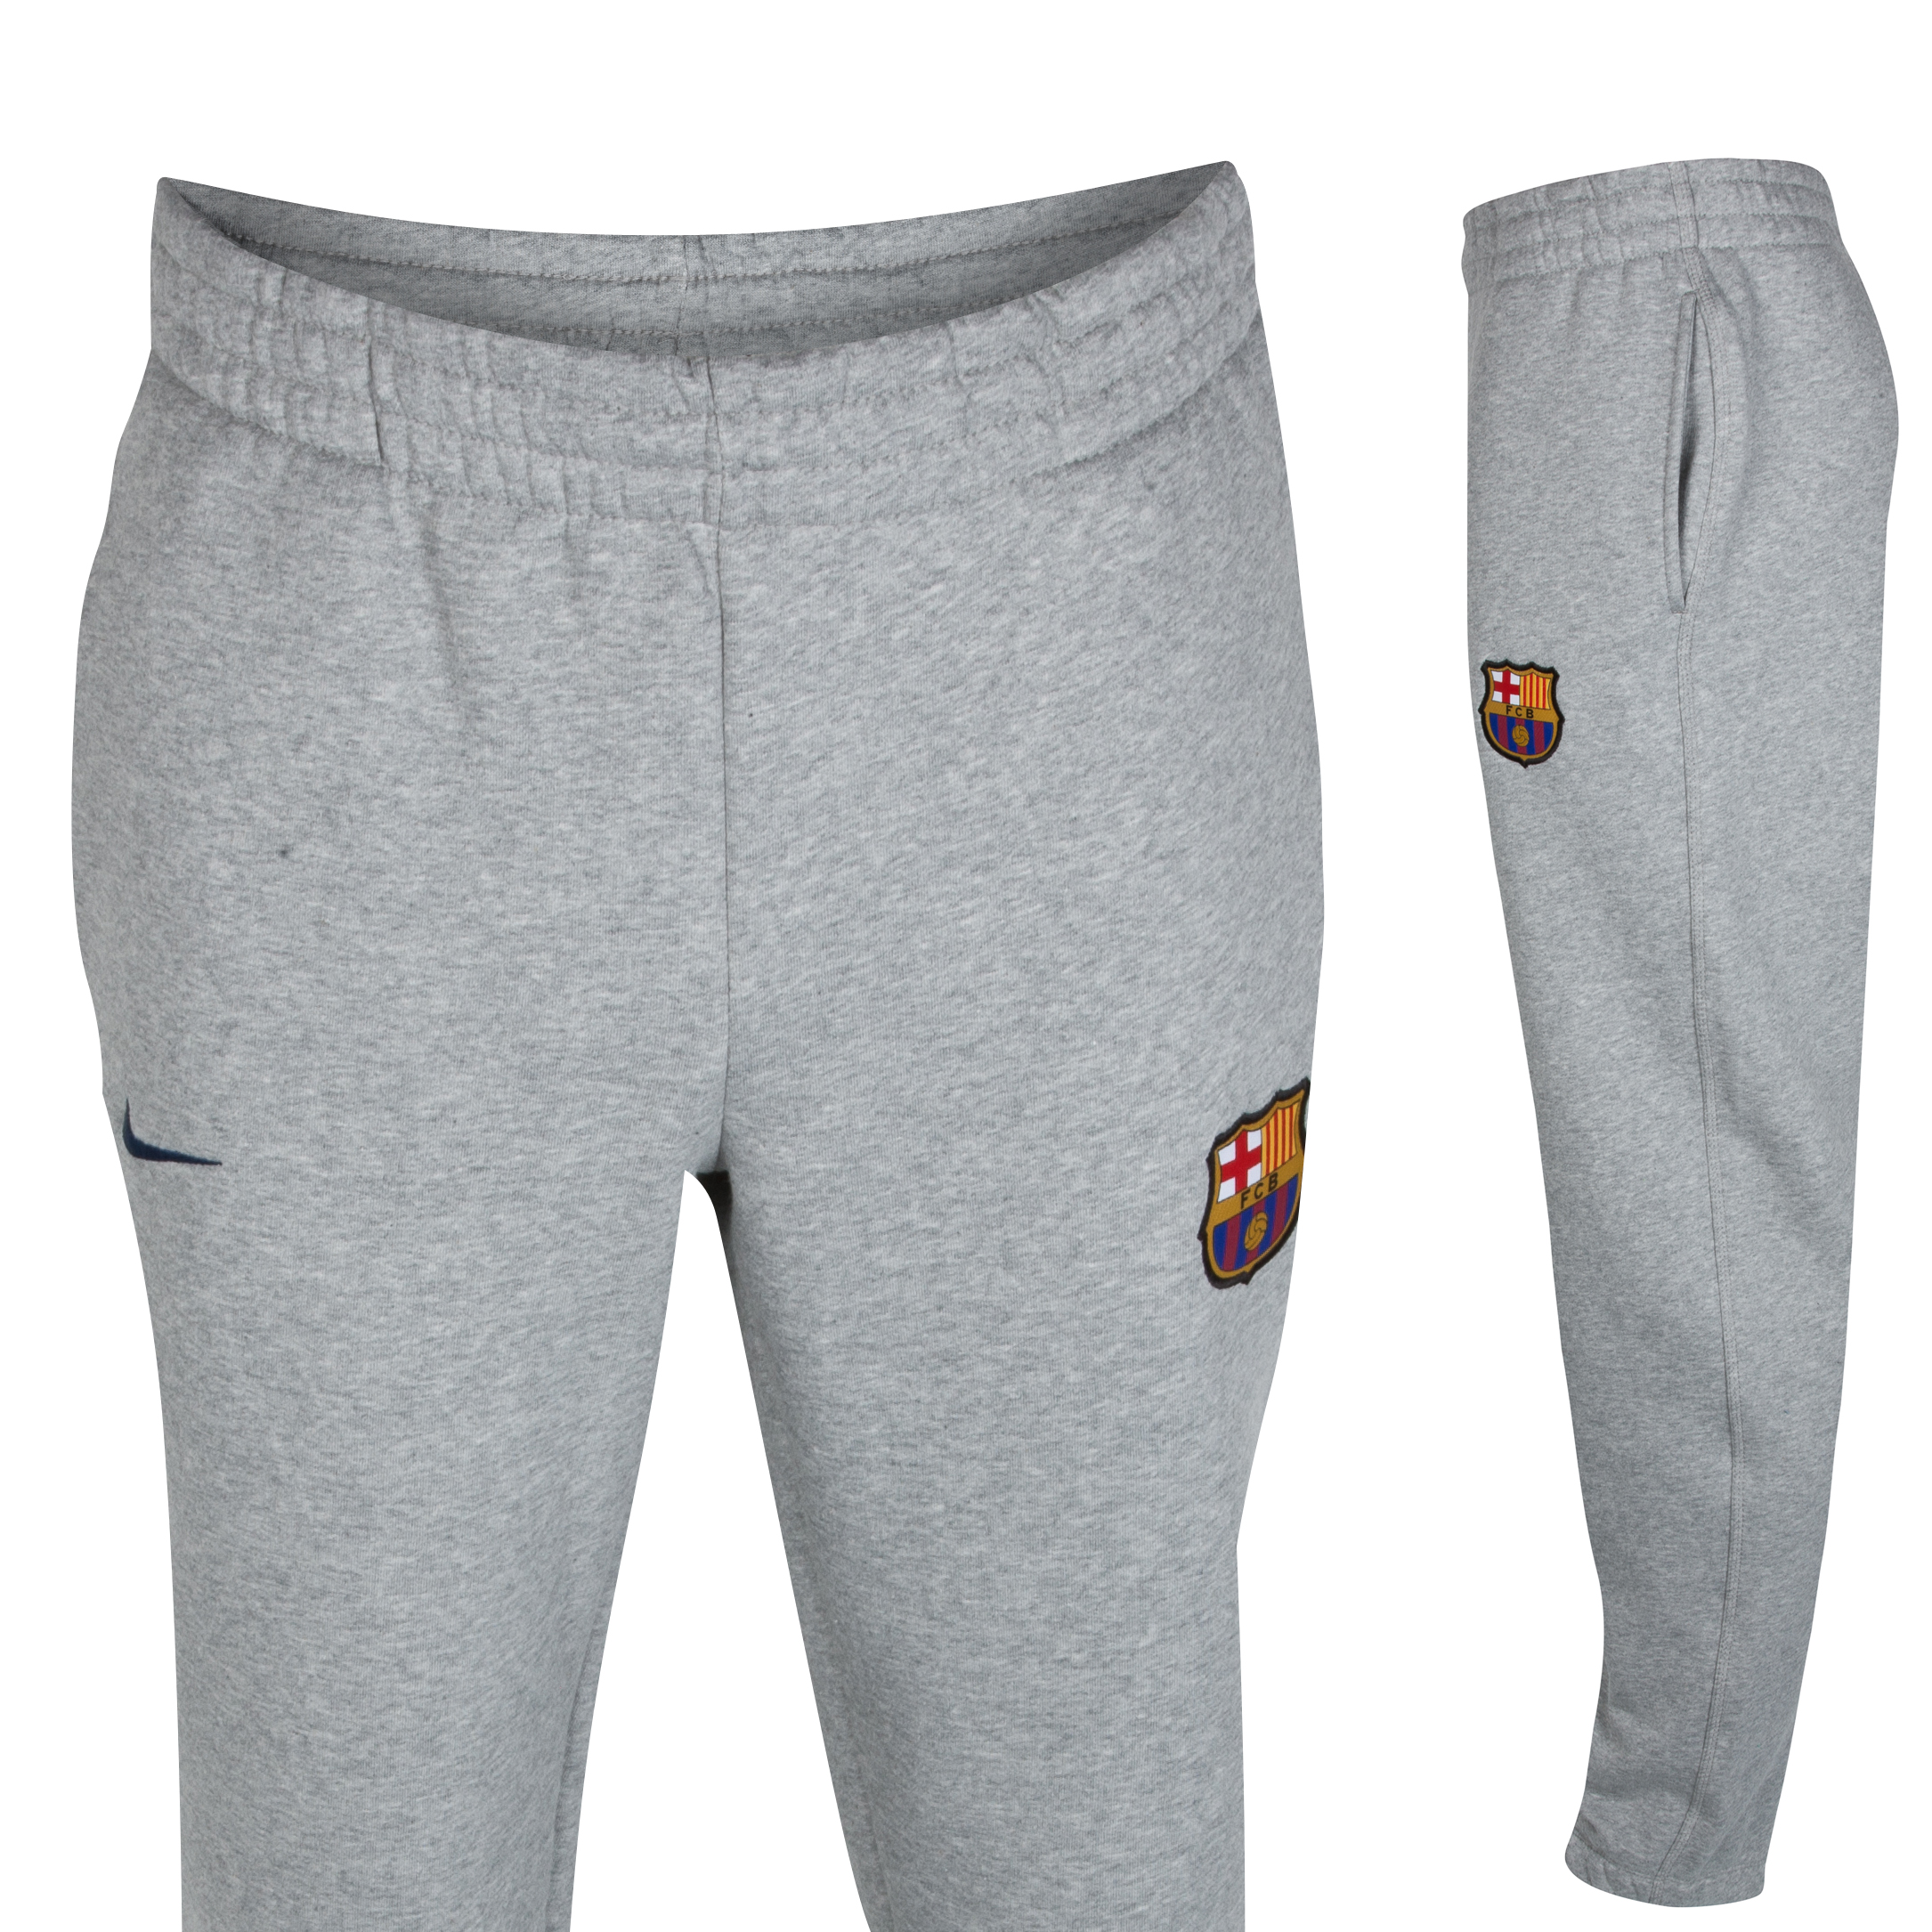 Barcelona Core Fleece Cuff Pant - Dark Grey Heather/Midnight Navy